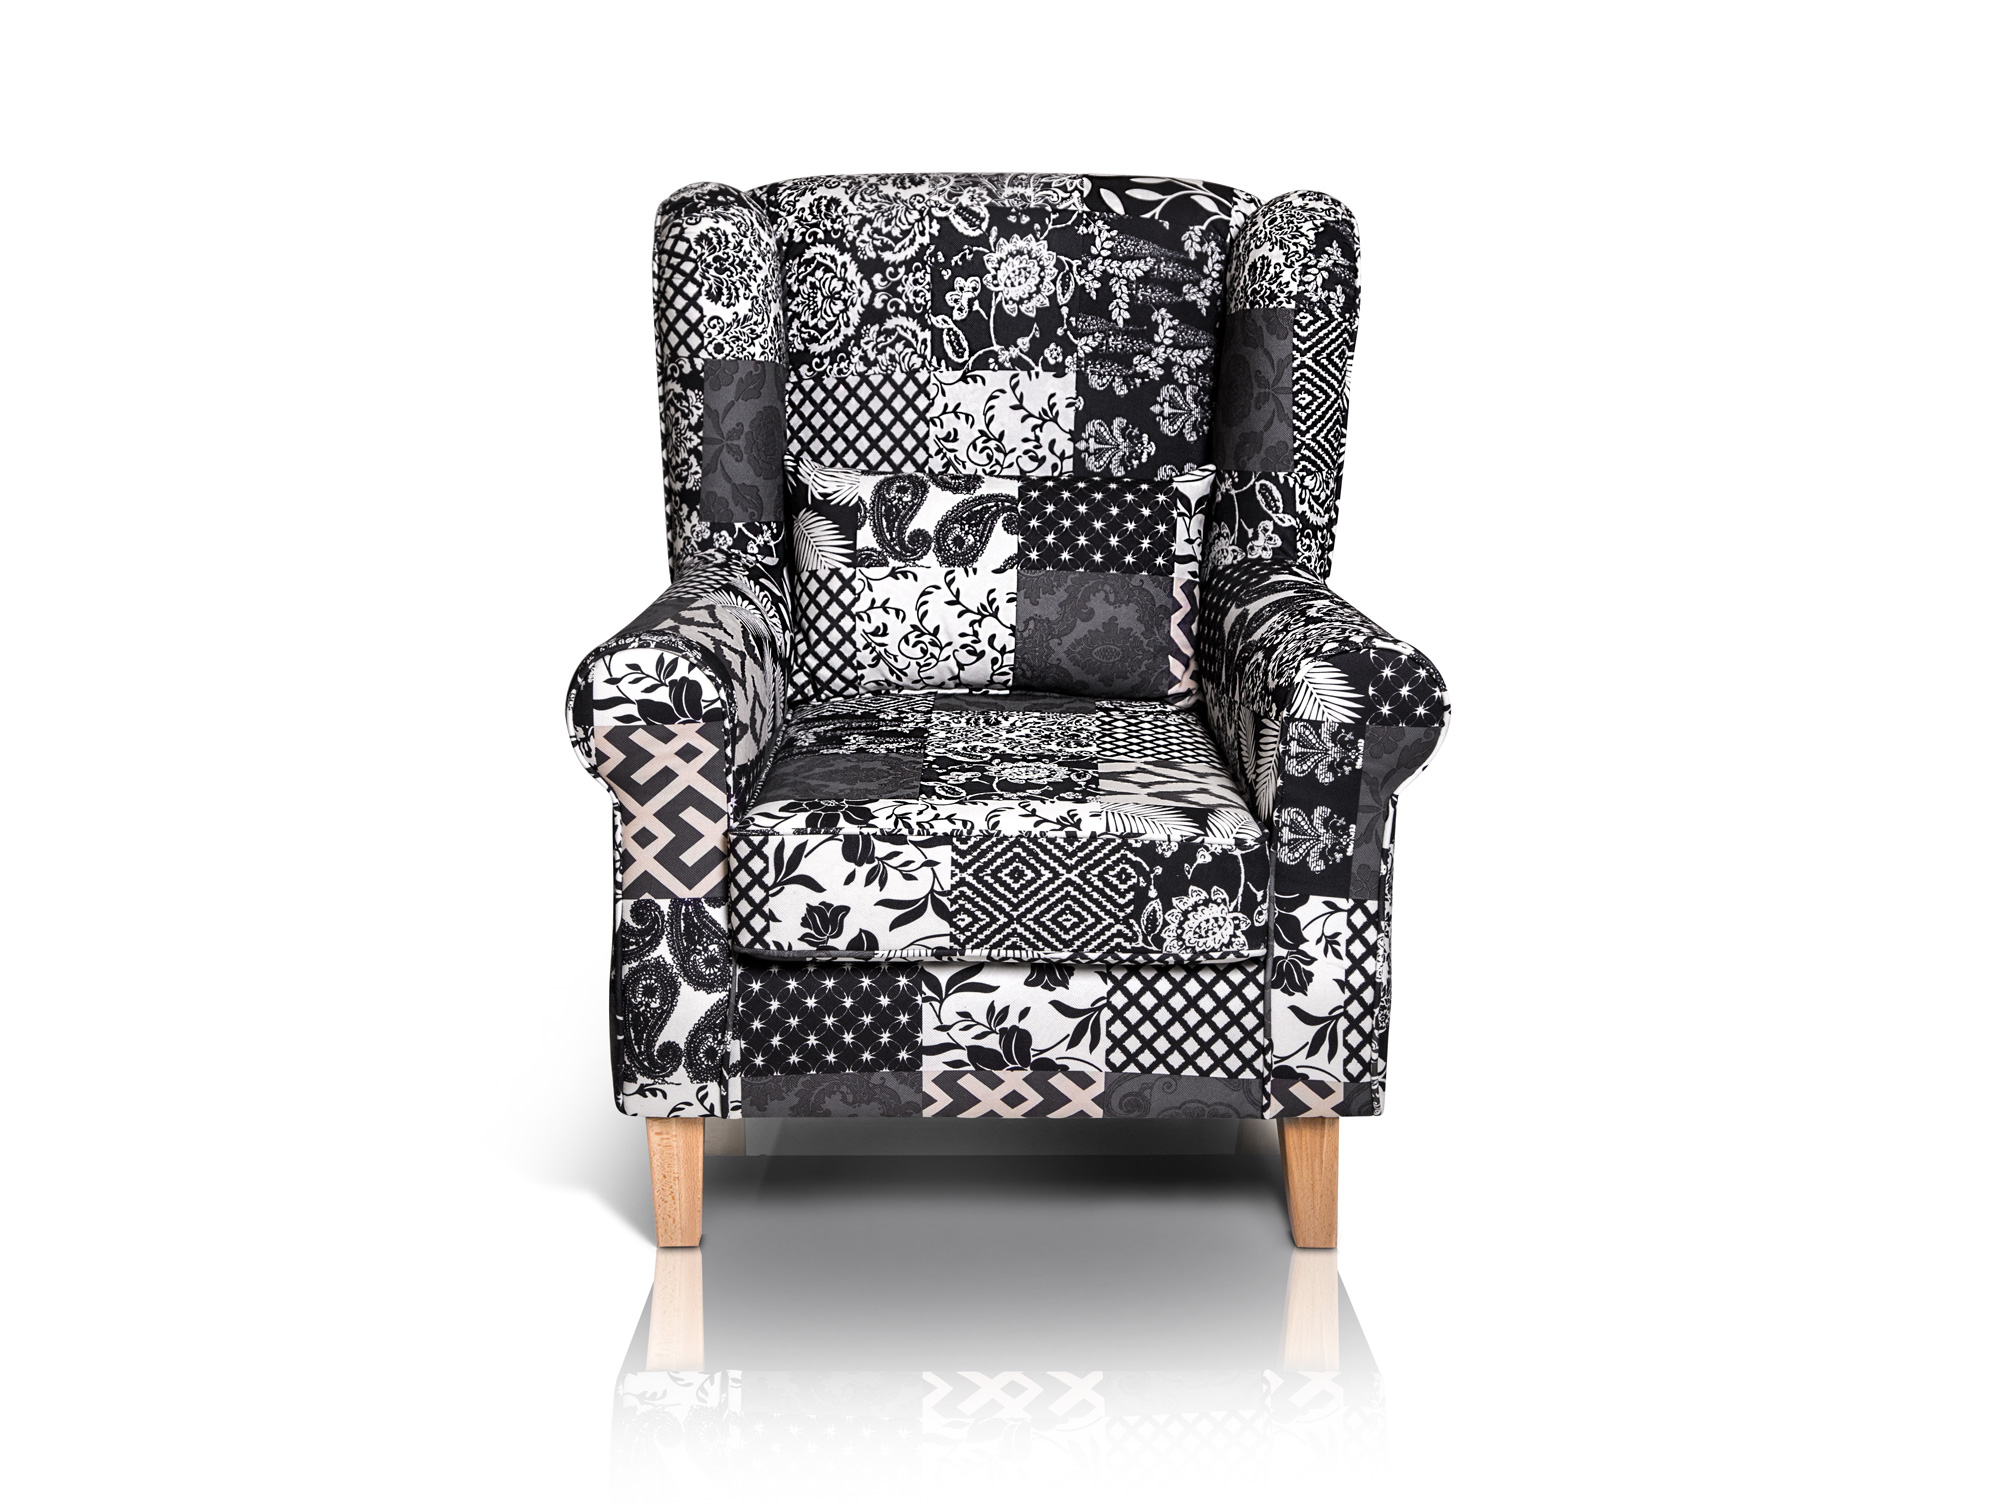 Patchwork Sessel Willy Ohrensessel Patchwork Schwarz